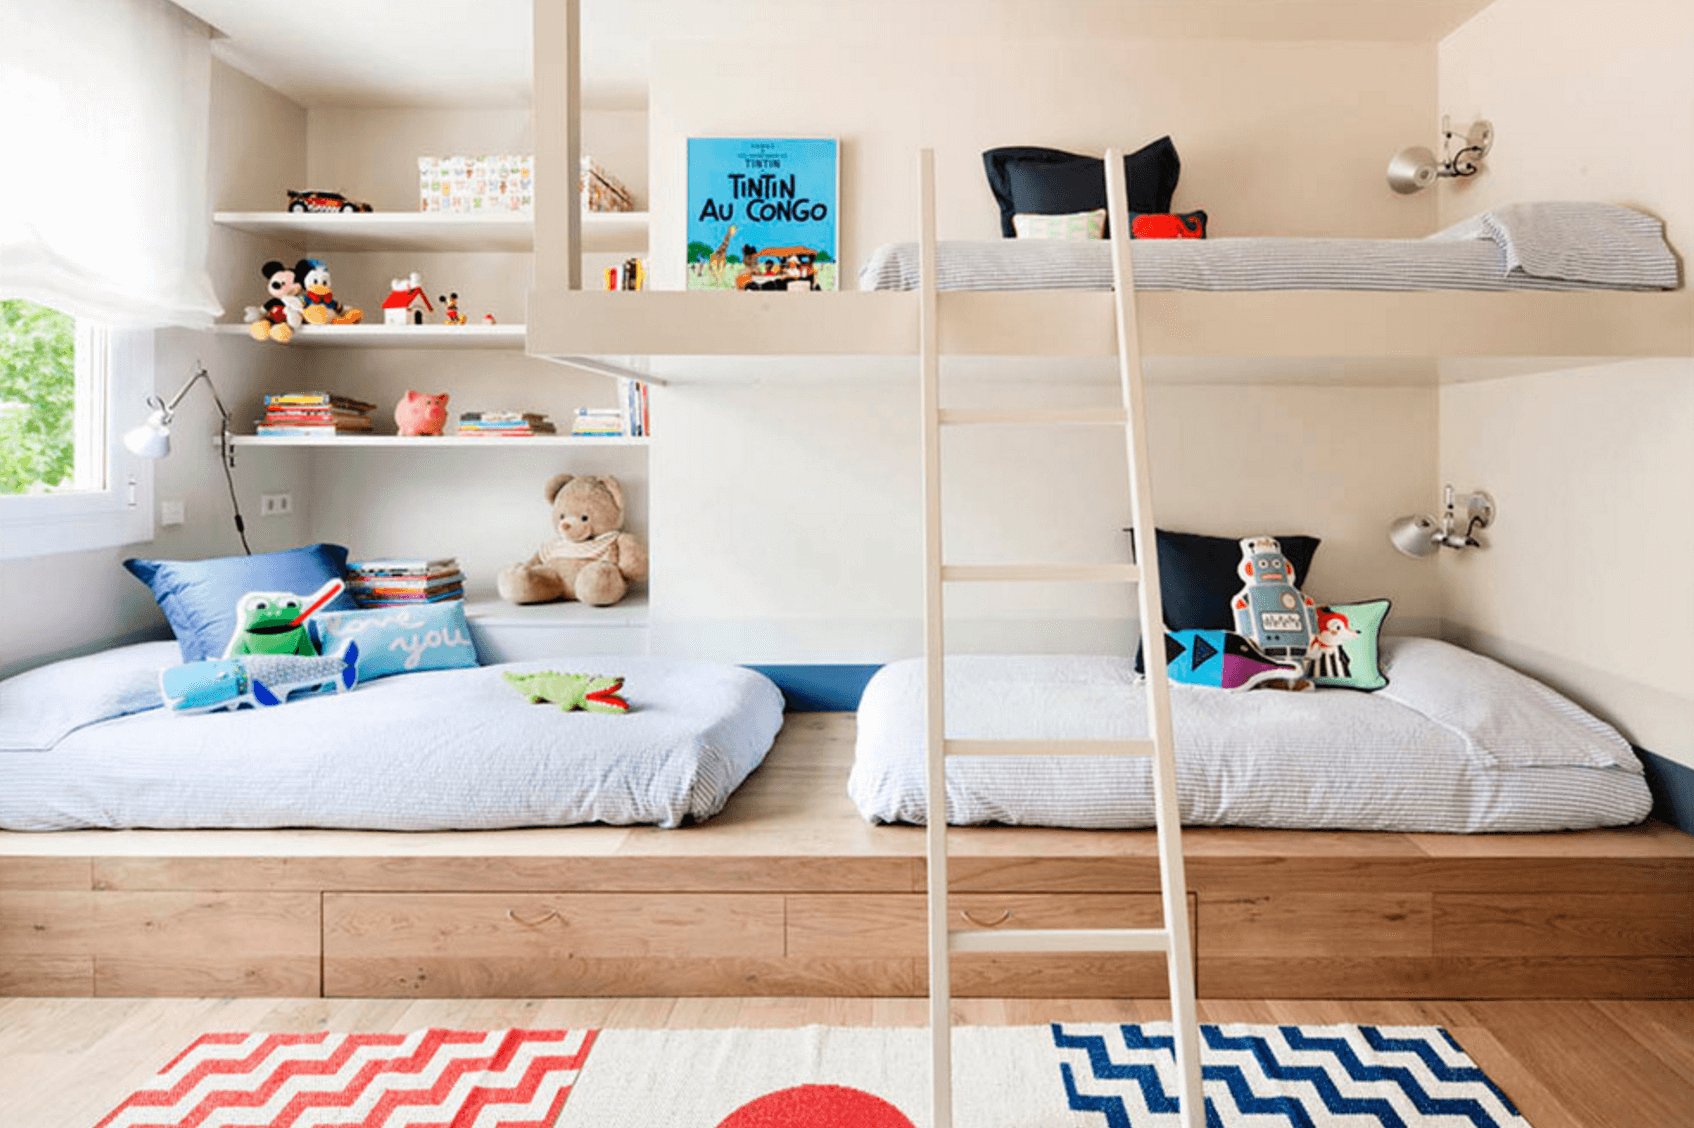 Shared Kids' Room With A Bunk Bed